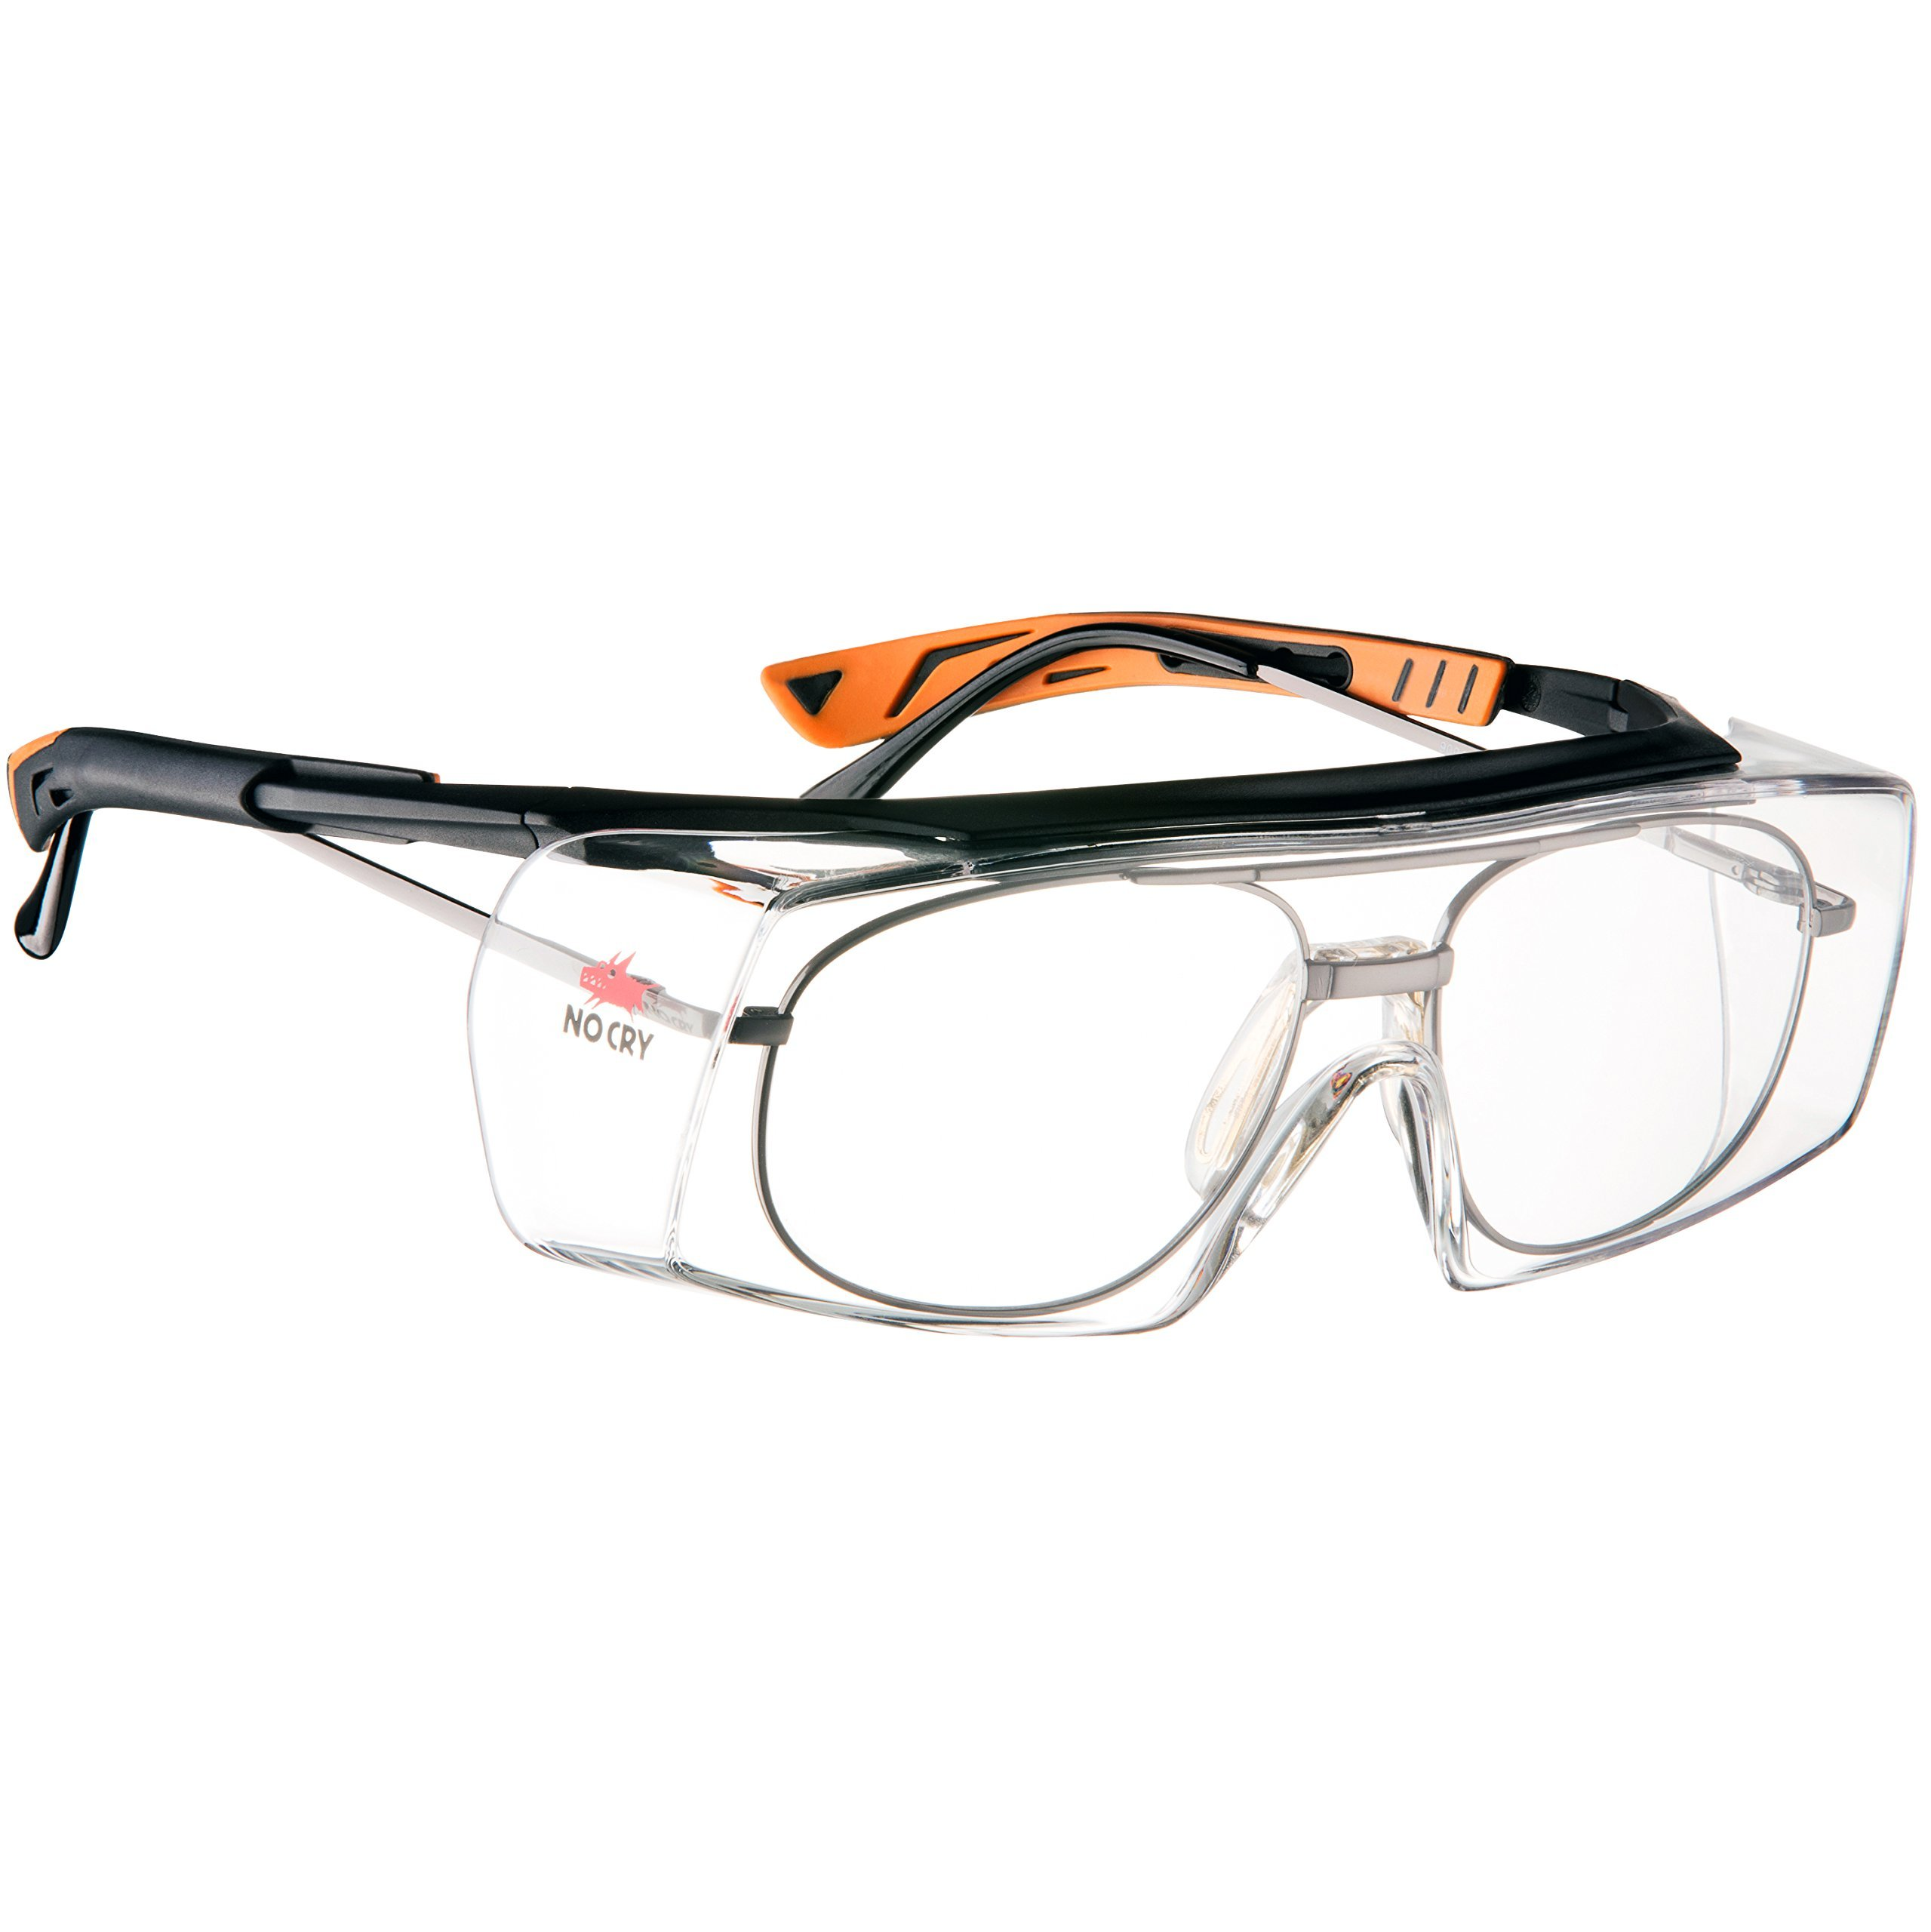 b11dd3de4b NoCry Over-Glasses Safety Glasses - with Clear Anti-Scratch Wraparound  Lenses